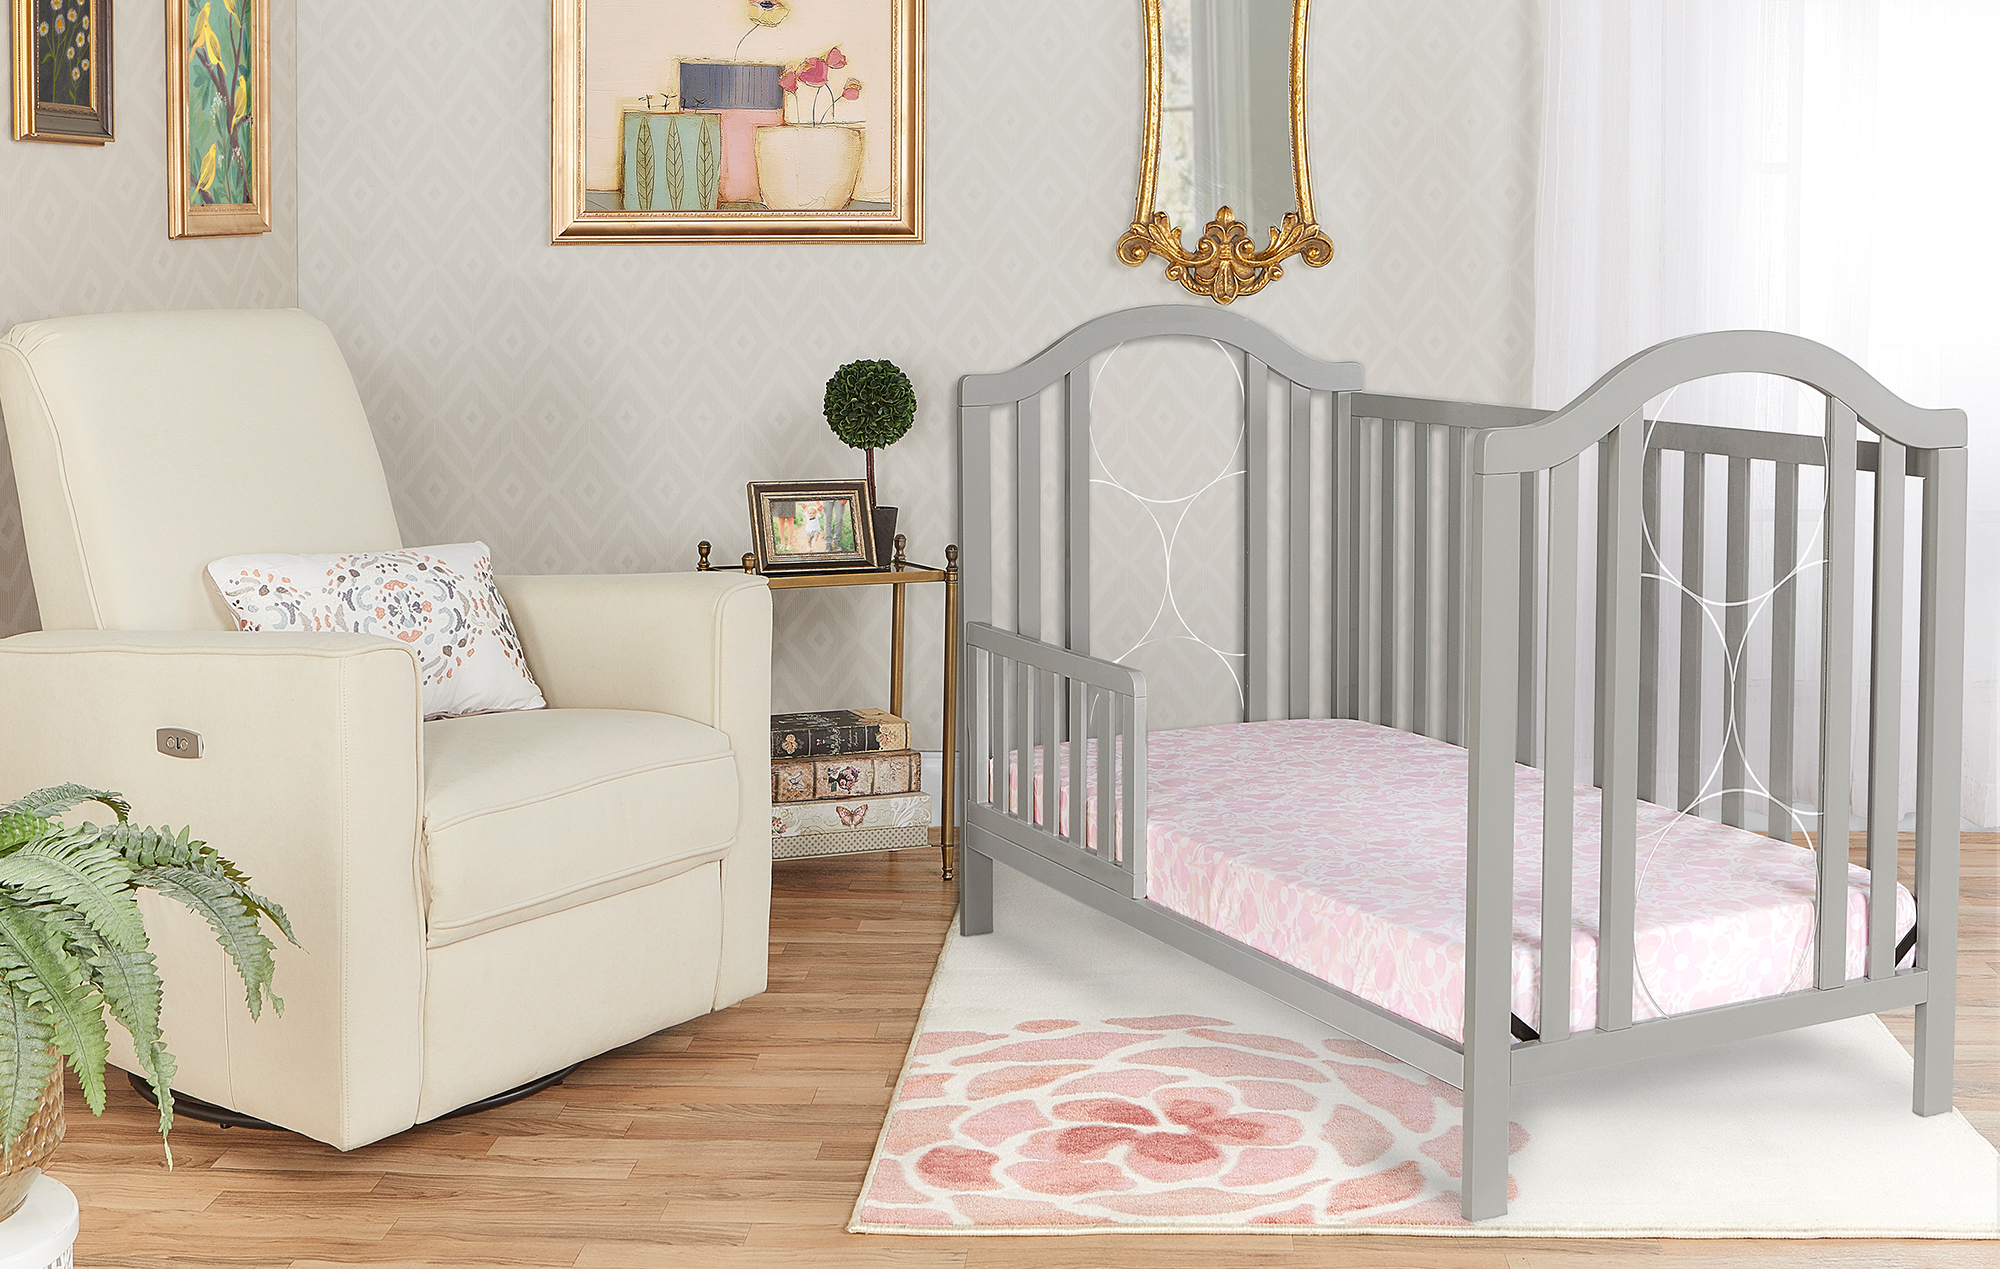 762-CG Pacific Toddler Bed Room Shot